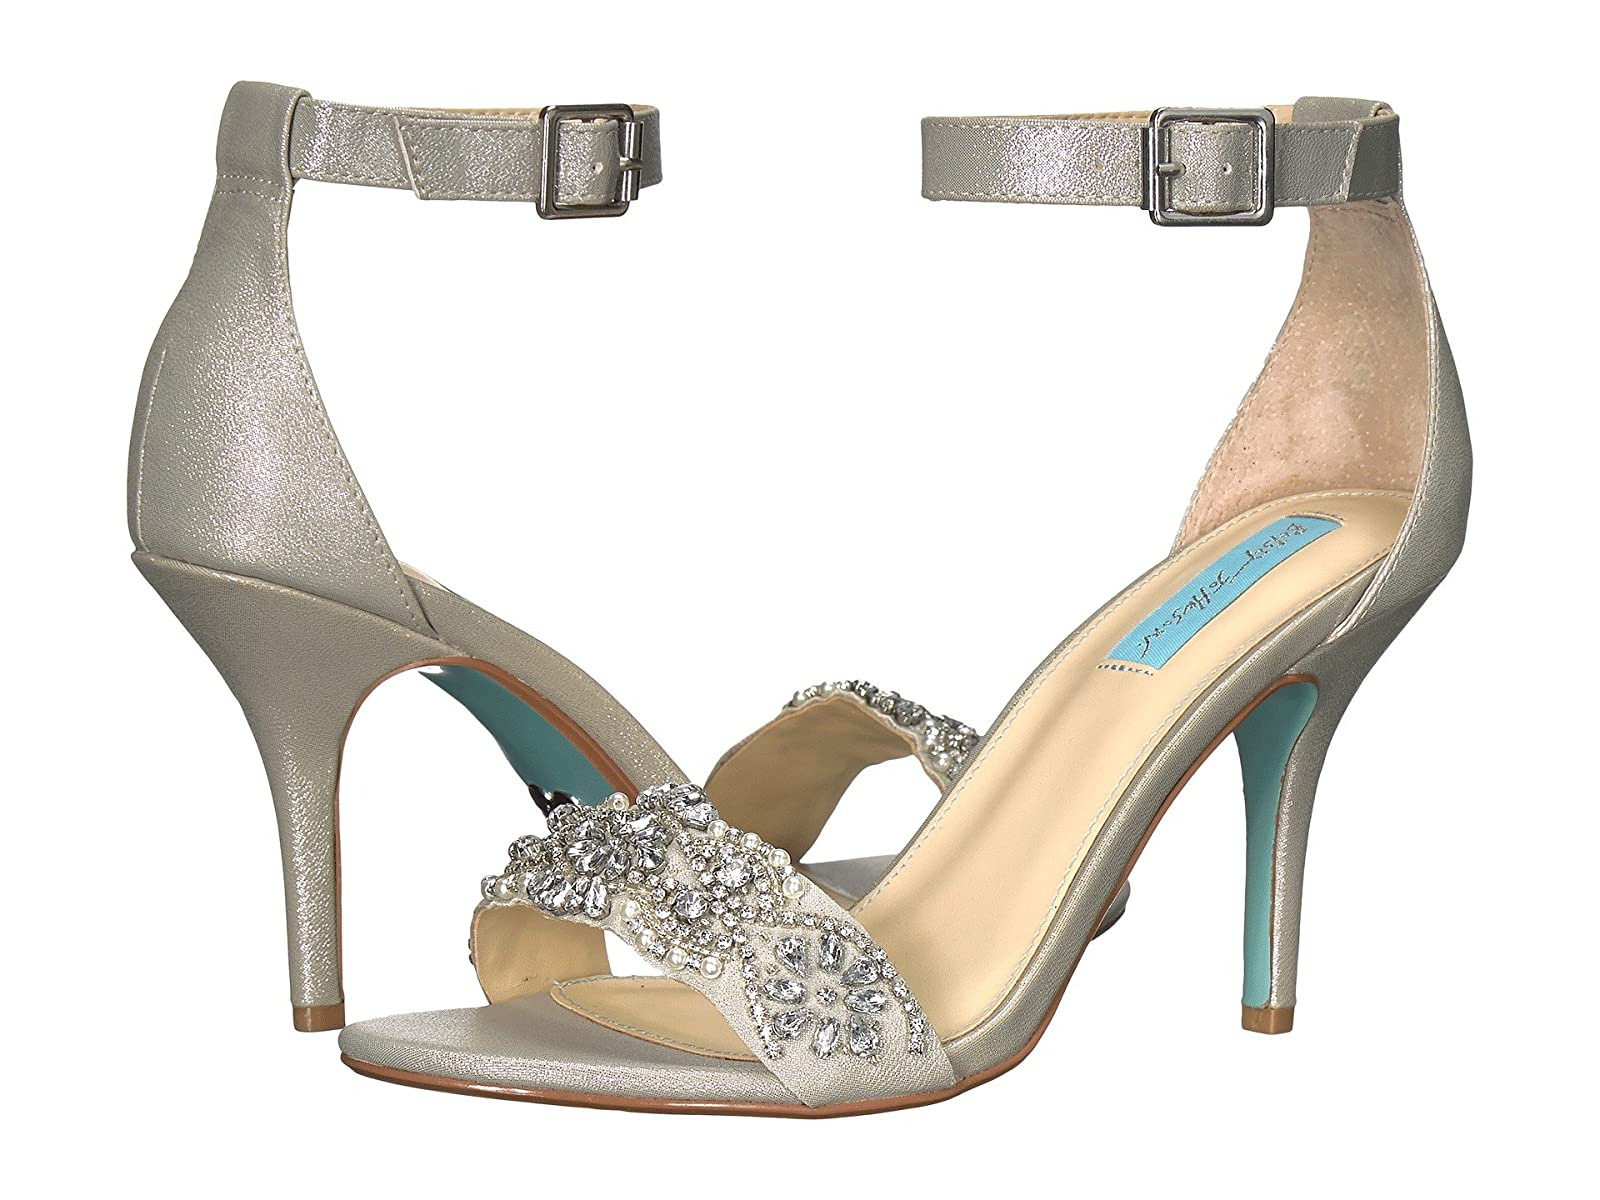 Blue by Betsey Johnson GinaAtmospheric grades have affordable shoes